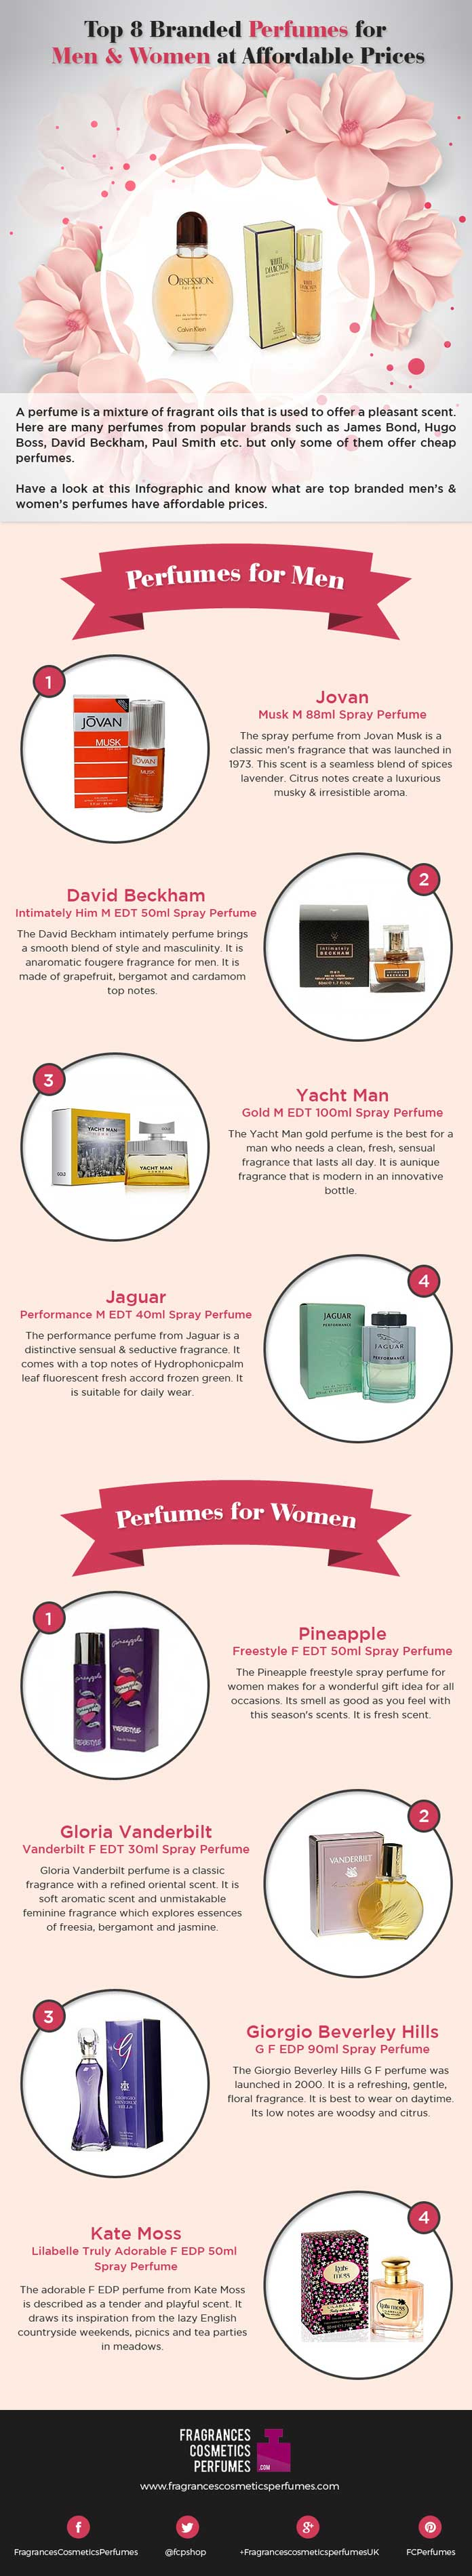 Top 8 Branded Perfumes for Men & Women at Affordable Prices